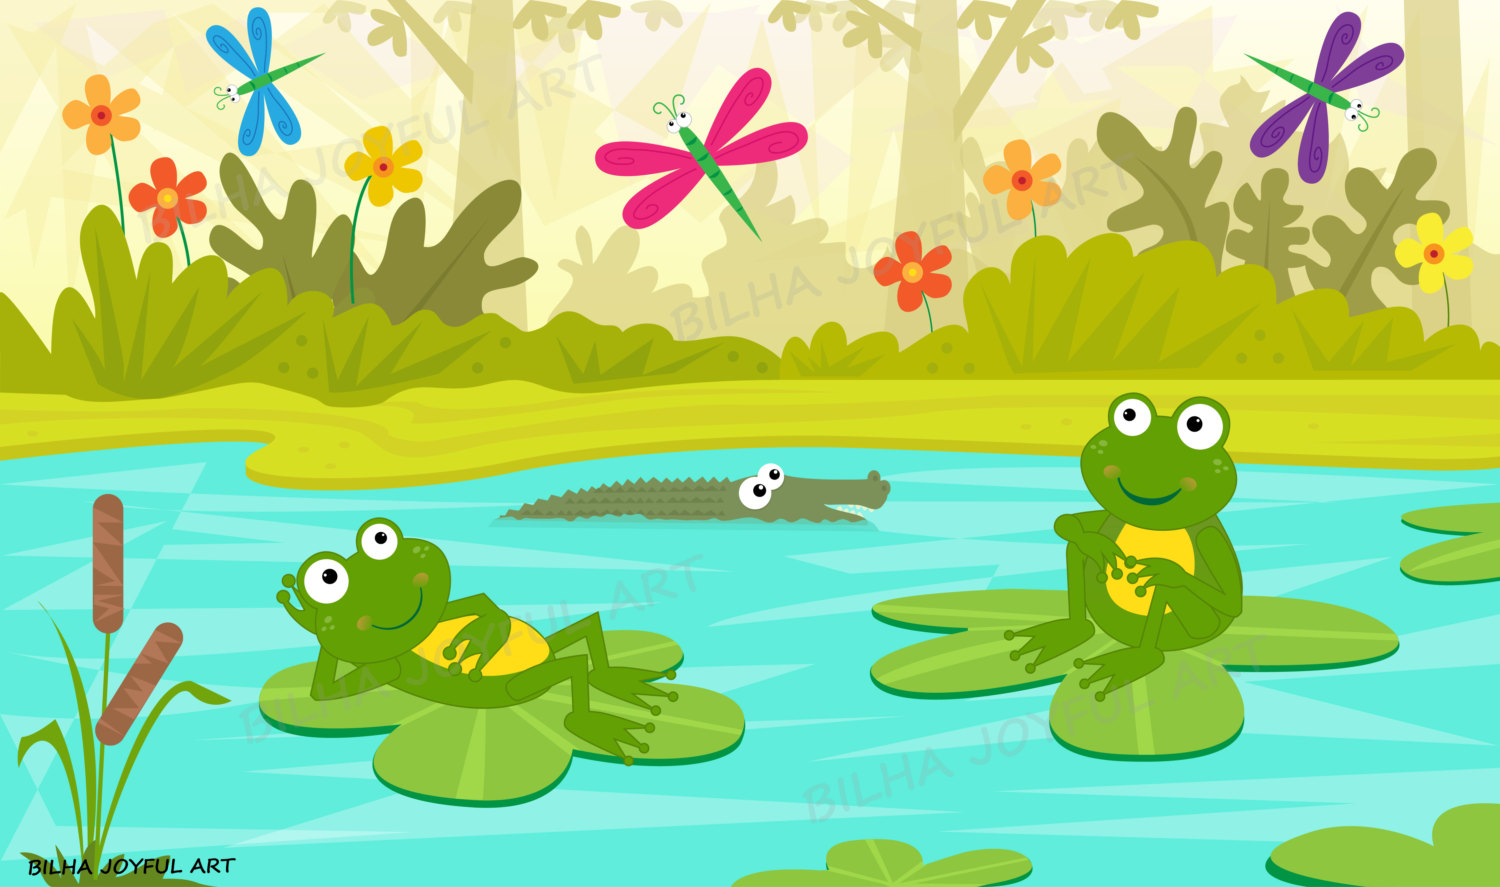 hight resolution of frogs at the pond clipart river cute frog amphibian kids room water lilly dragonfly vector catoon illustration clip art decoration download